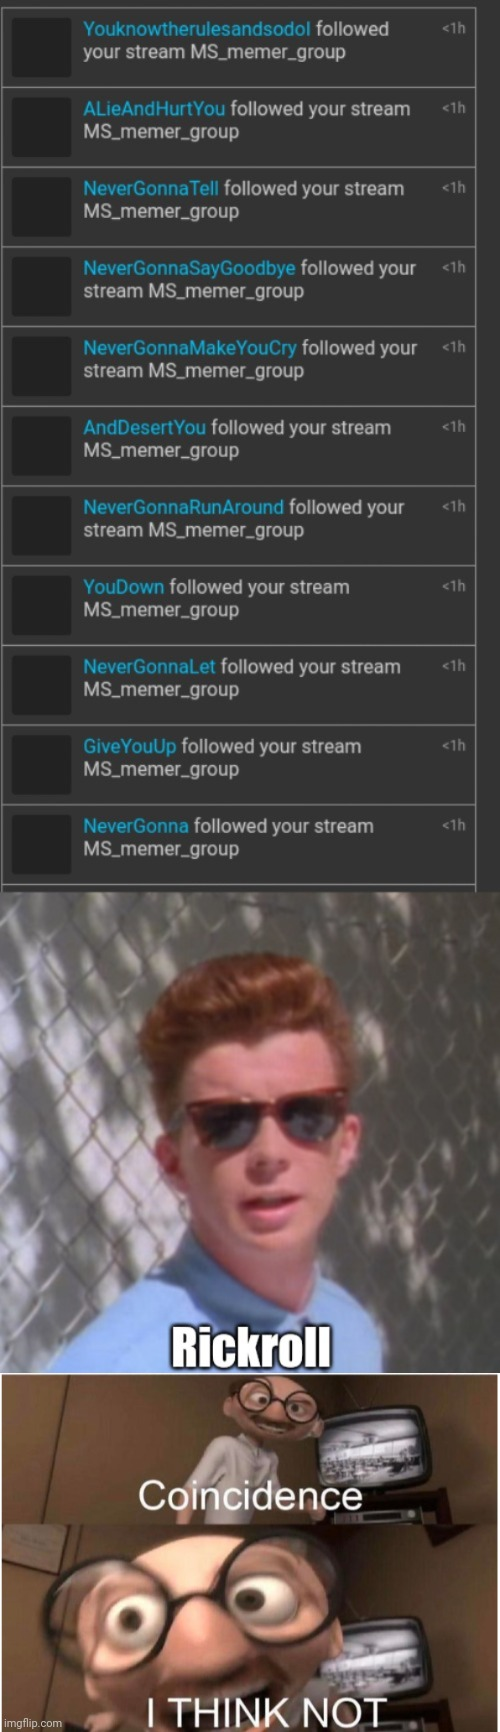 Rickroll: I just came back on here with these notifs. | image tagged in coincidence i think not,rickroll,memes,meme,notifications,stream | made w/ Imgflip meme maker